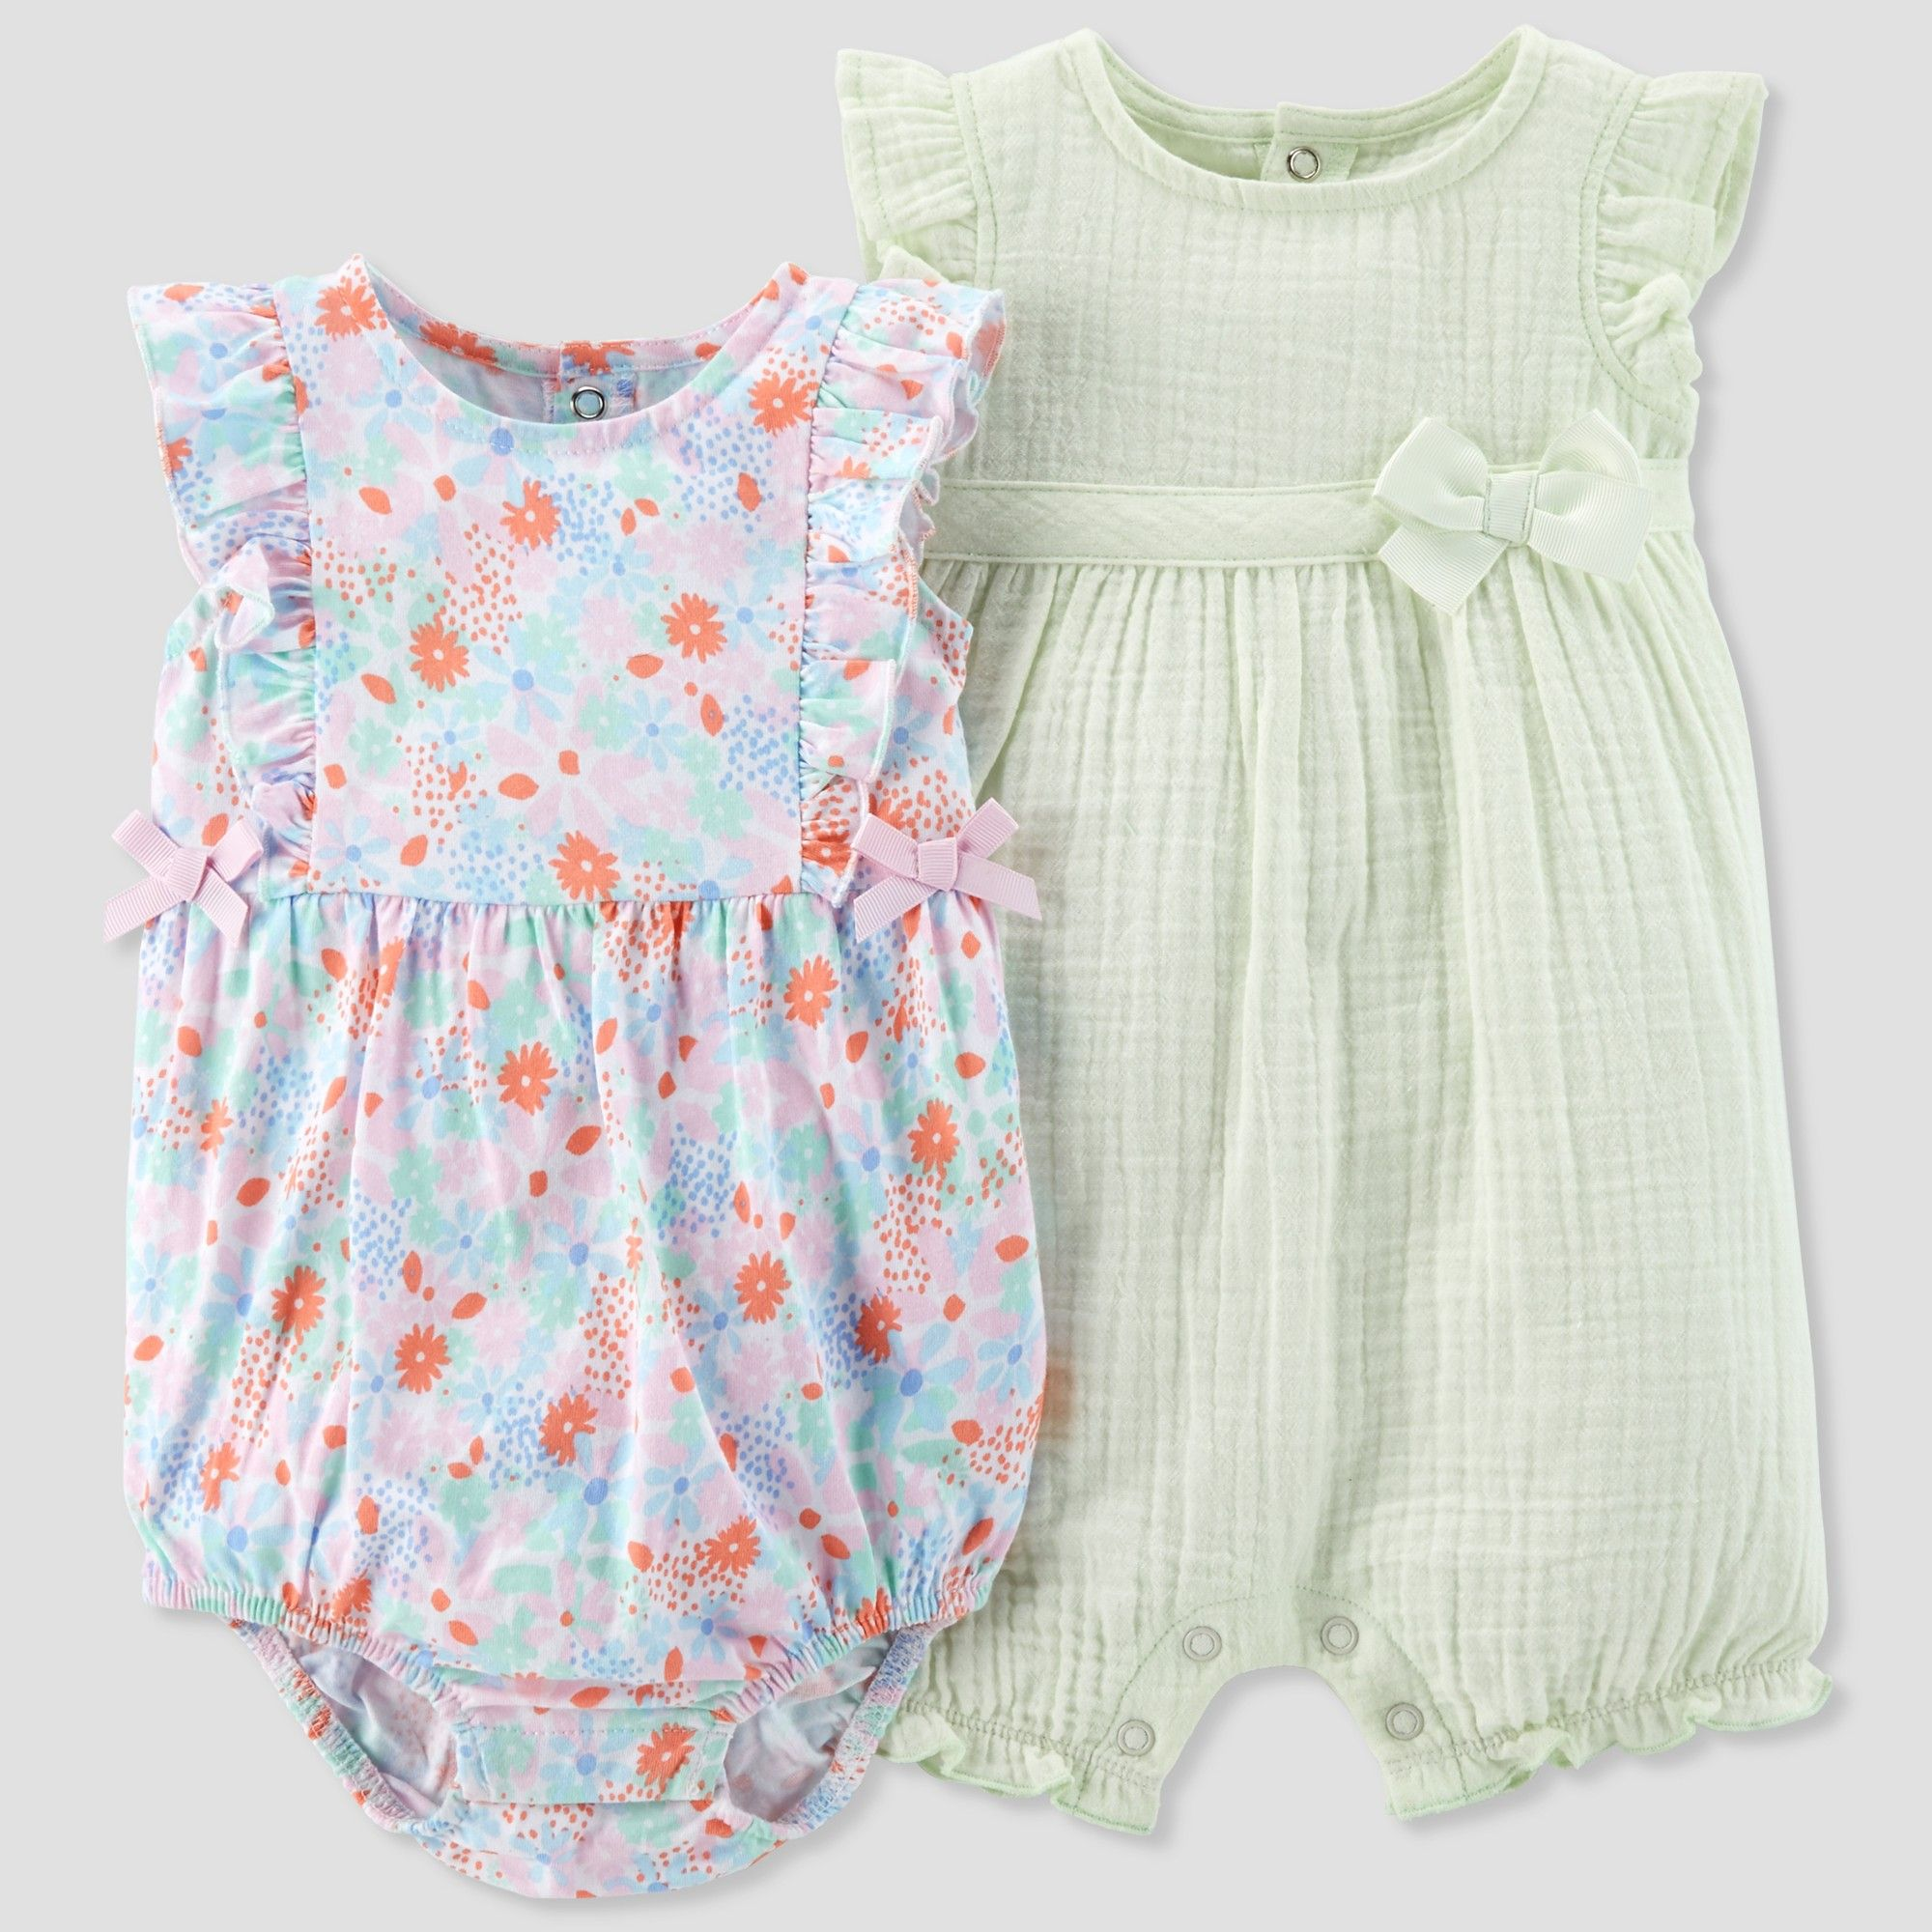 9e4249e28 Baby Girls  2pk Romper Set - Just One You made by carter s Mint ...